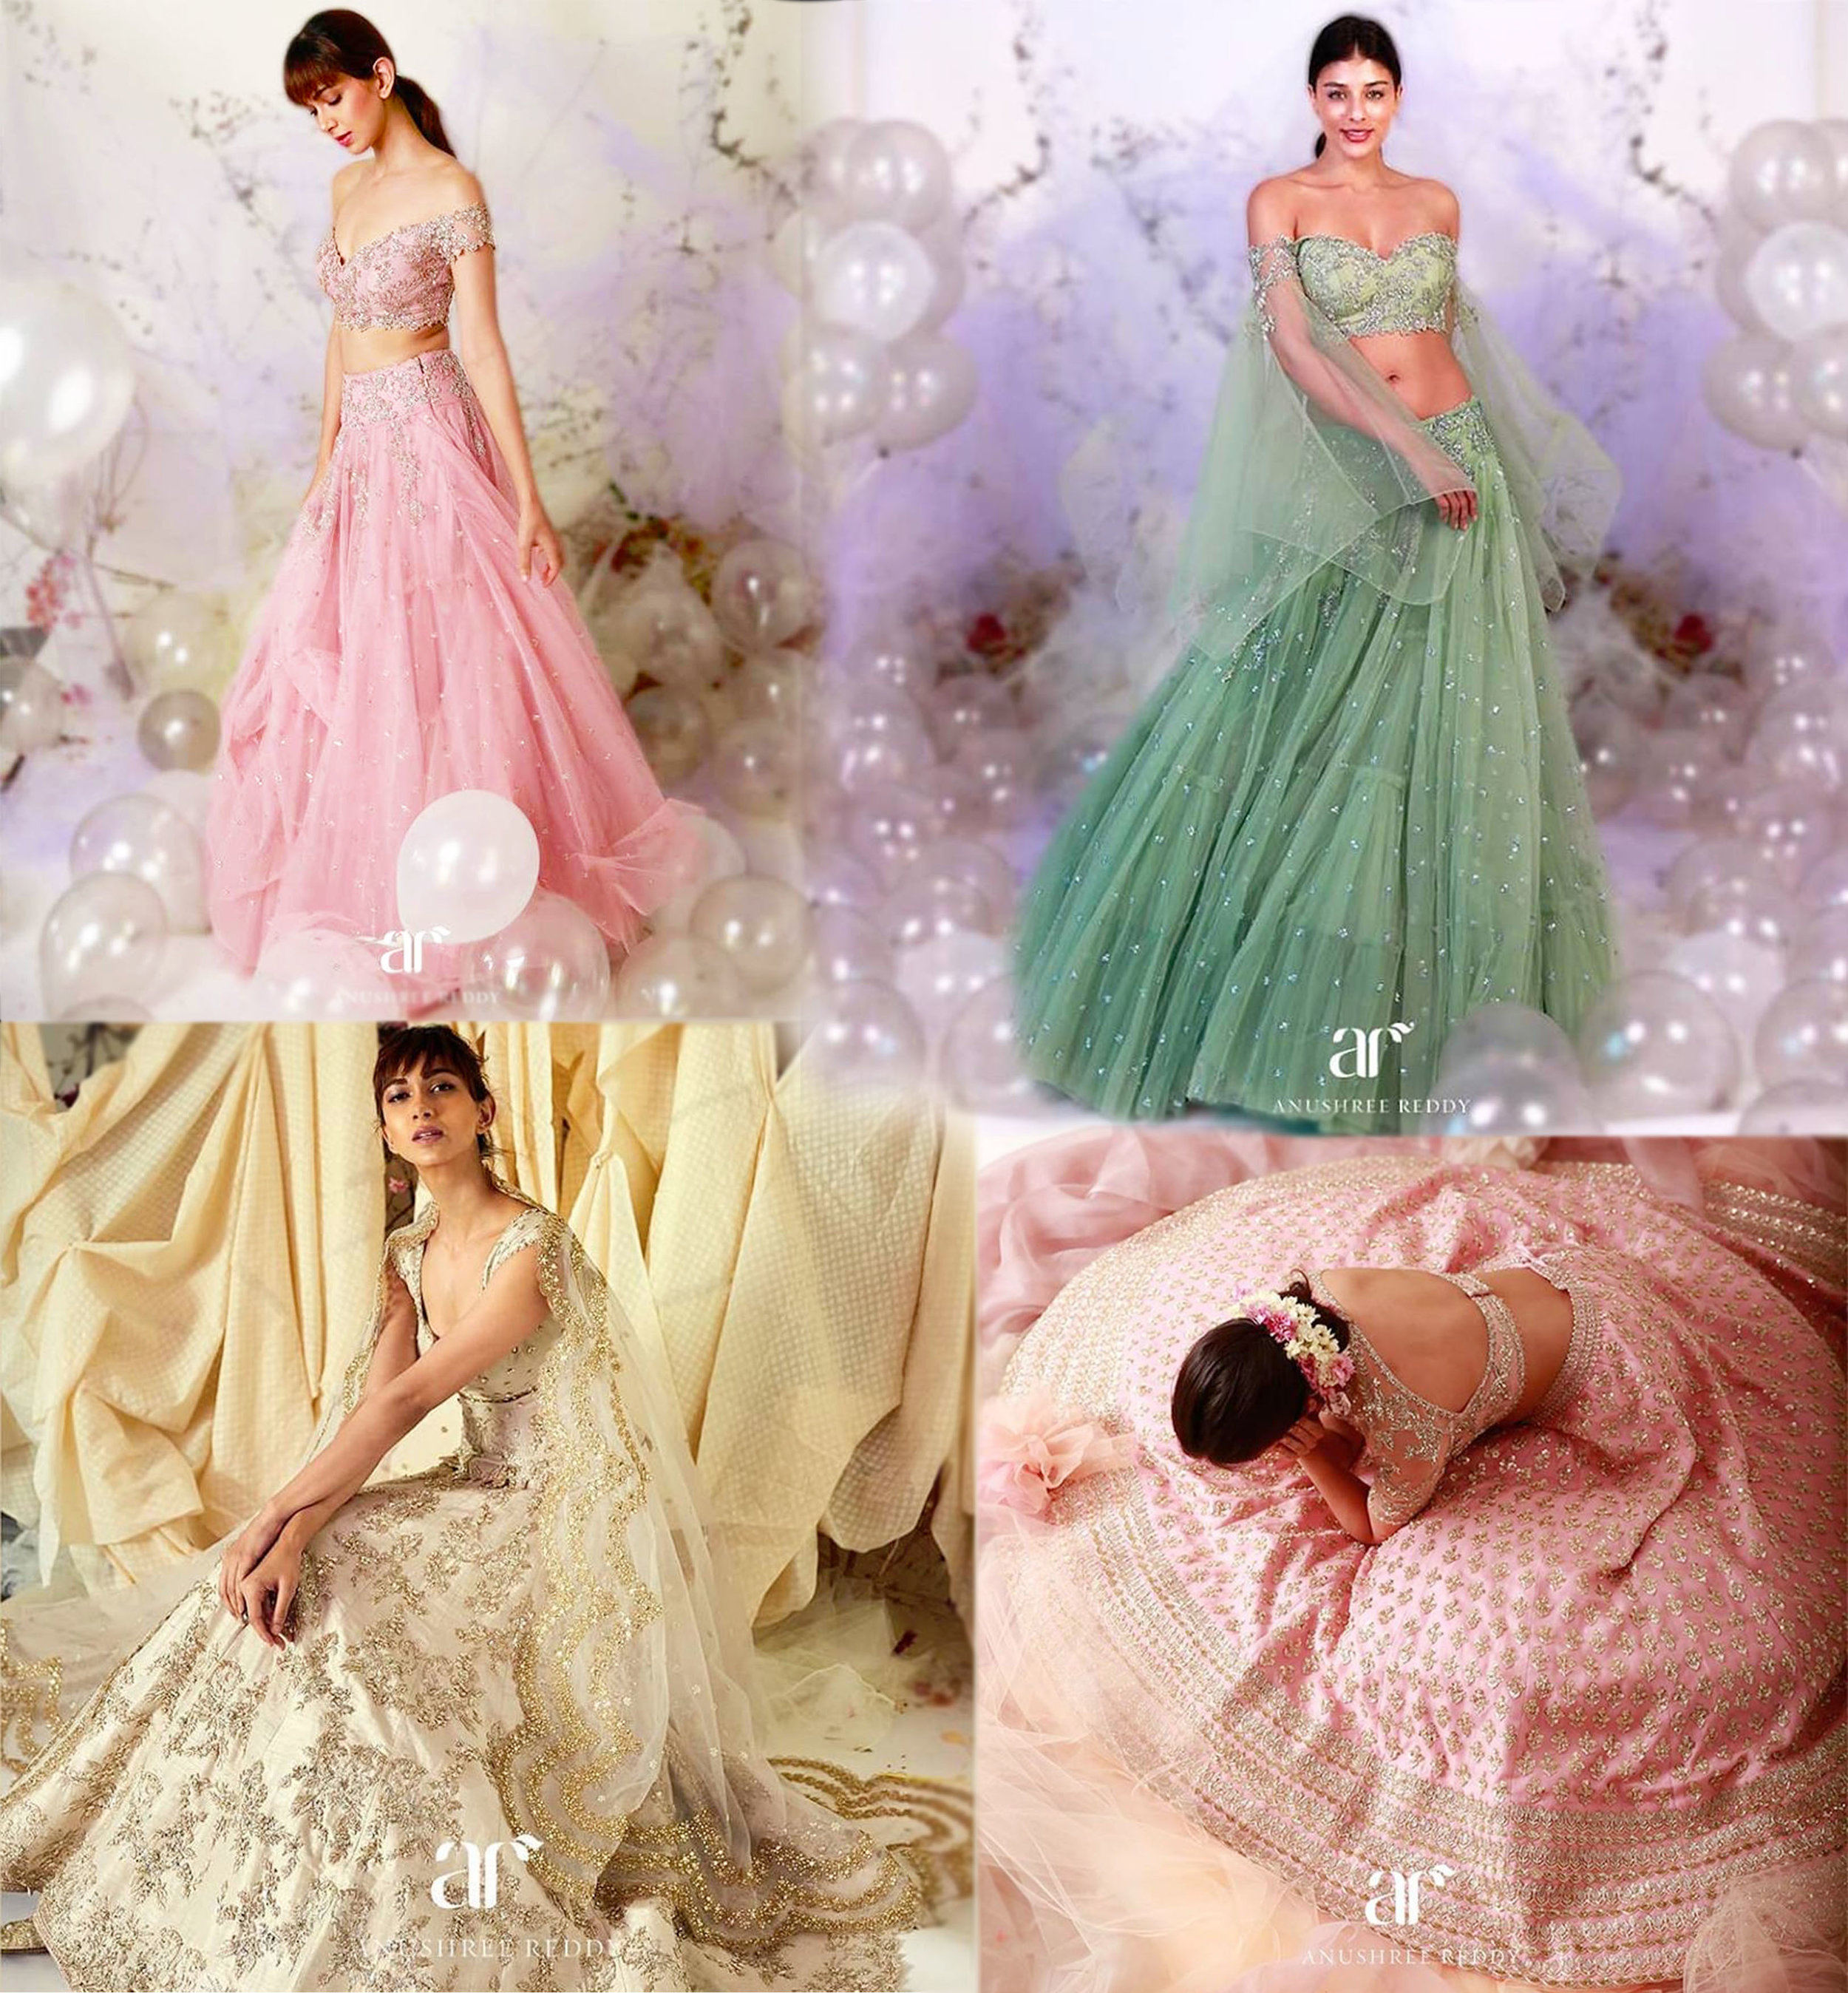 Anushree Reddy - A collection for summer that has a refreshing take on pastels, with lots of delicate, embroidery bead work.